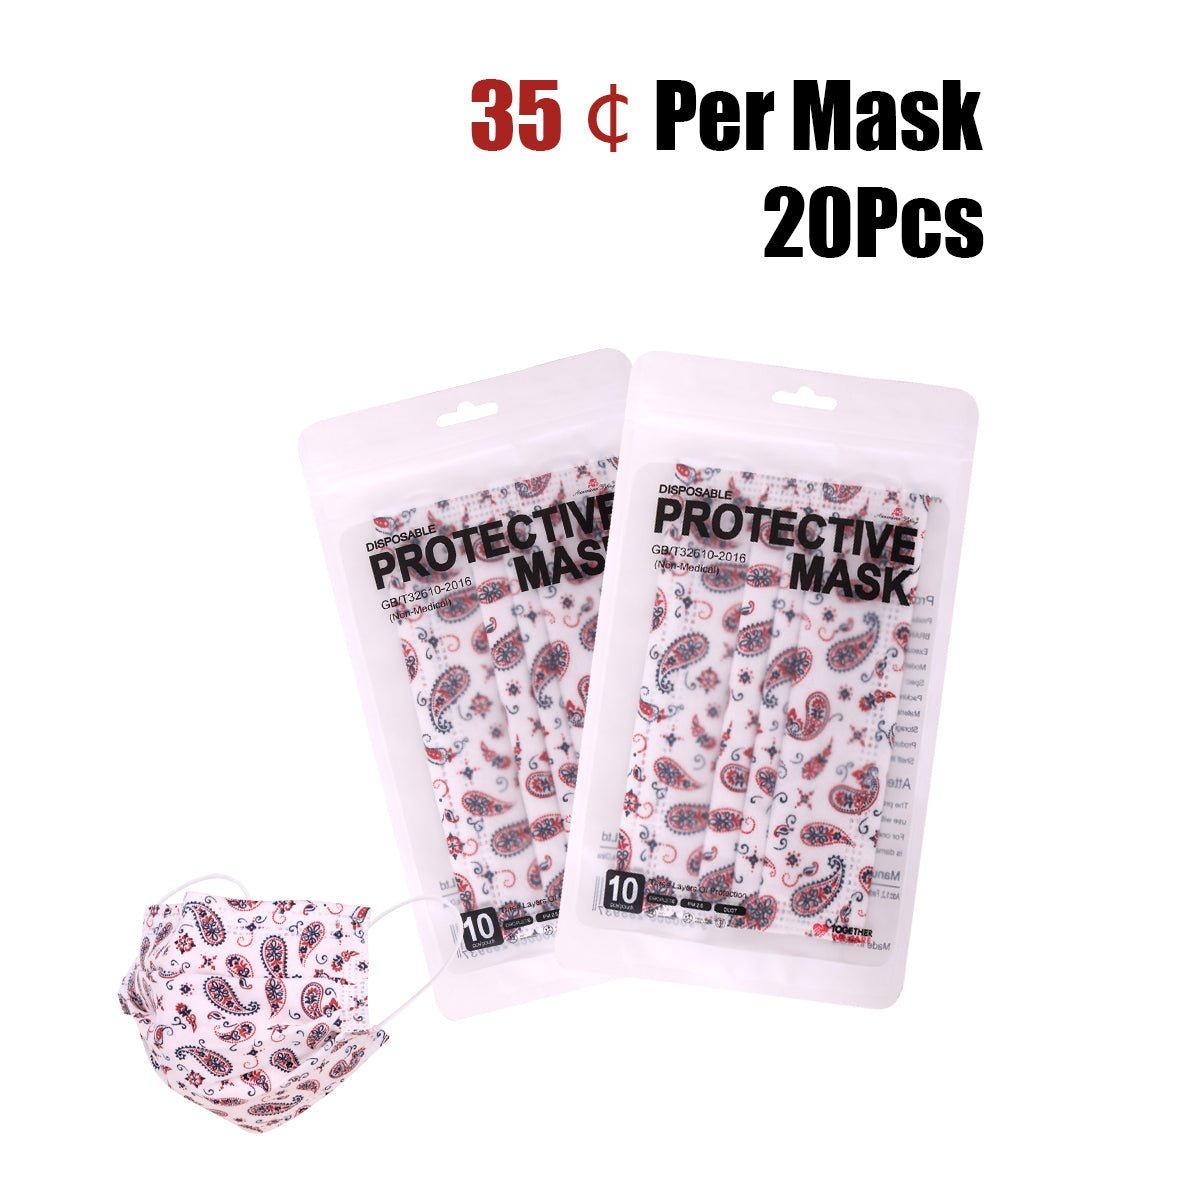 20Pcs American Bling 10Pcs /Pack White Paisley Print 3Ply Disposable Face Masks